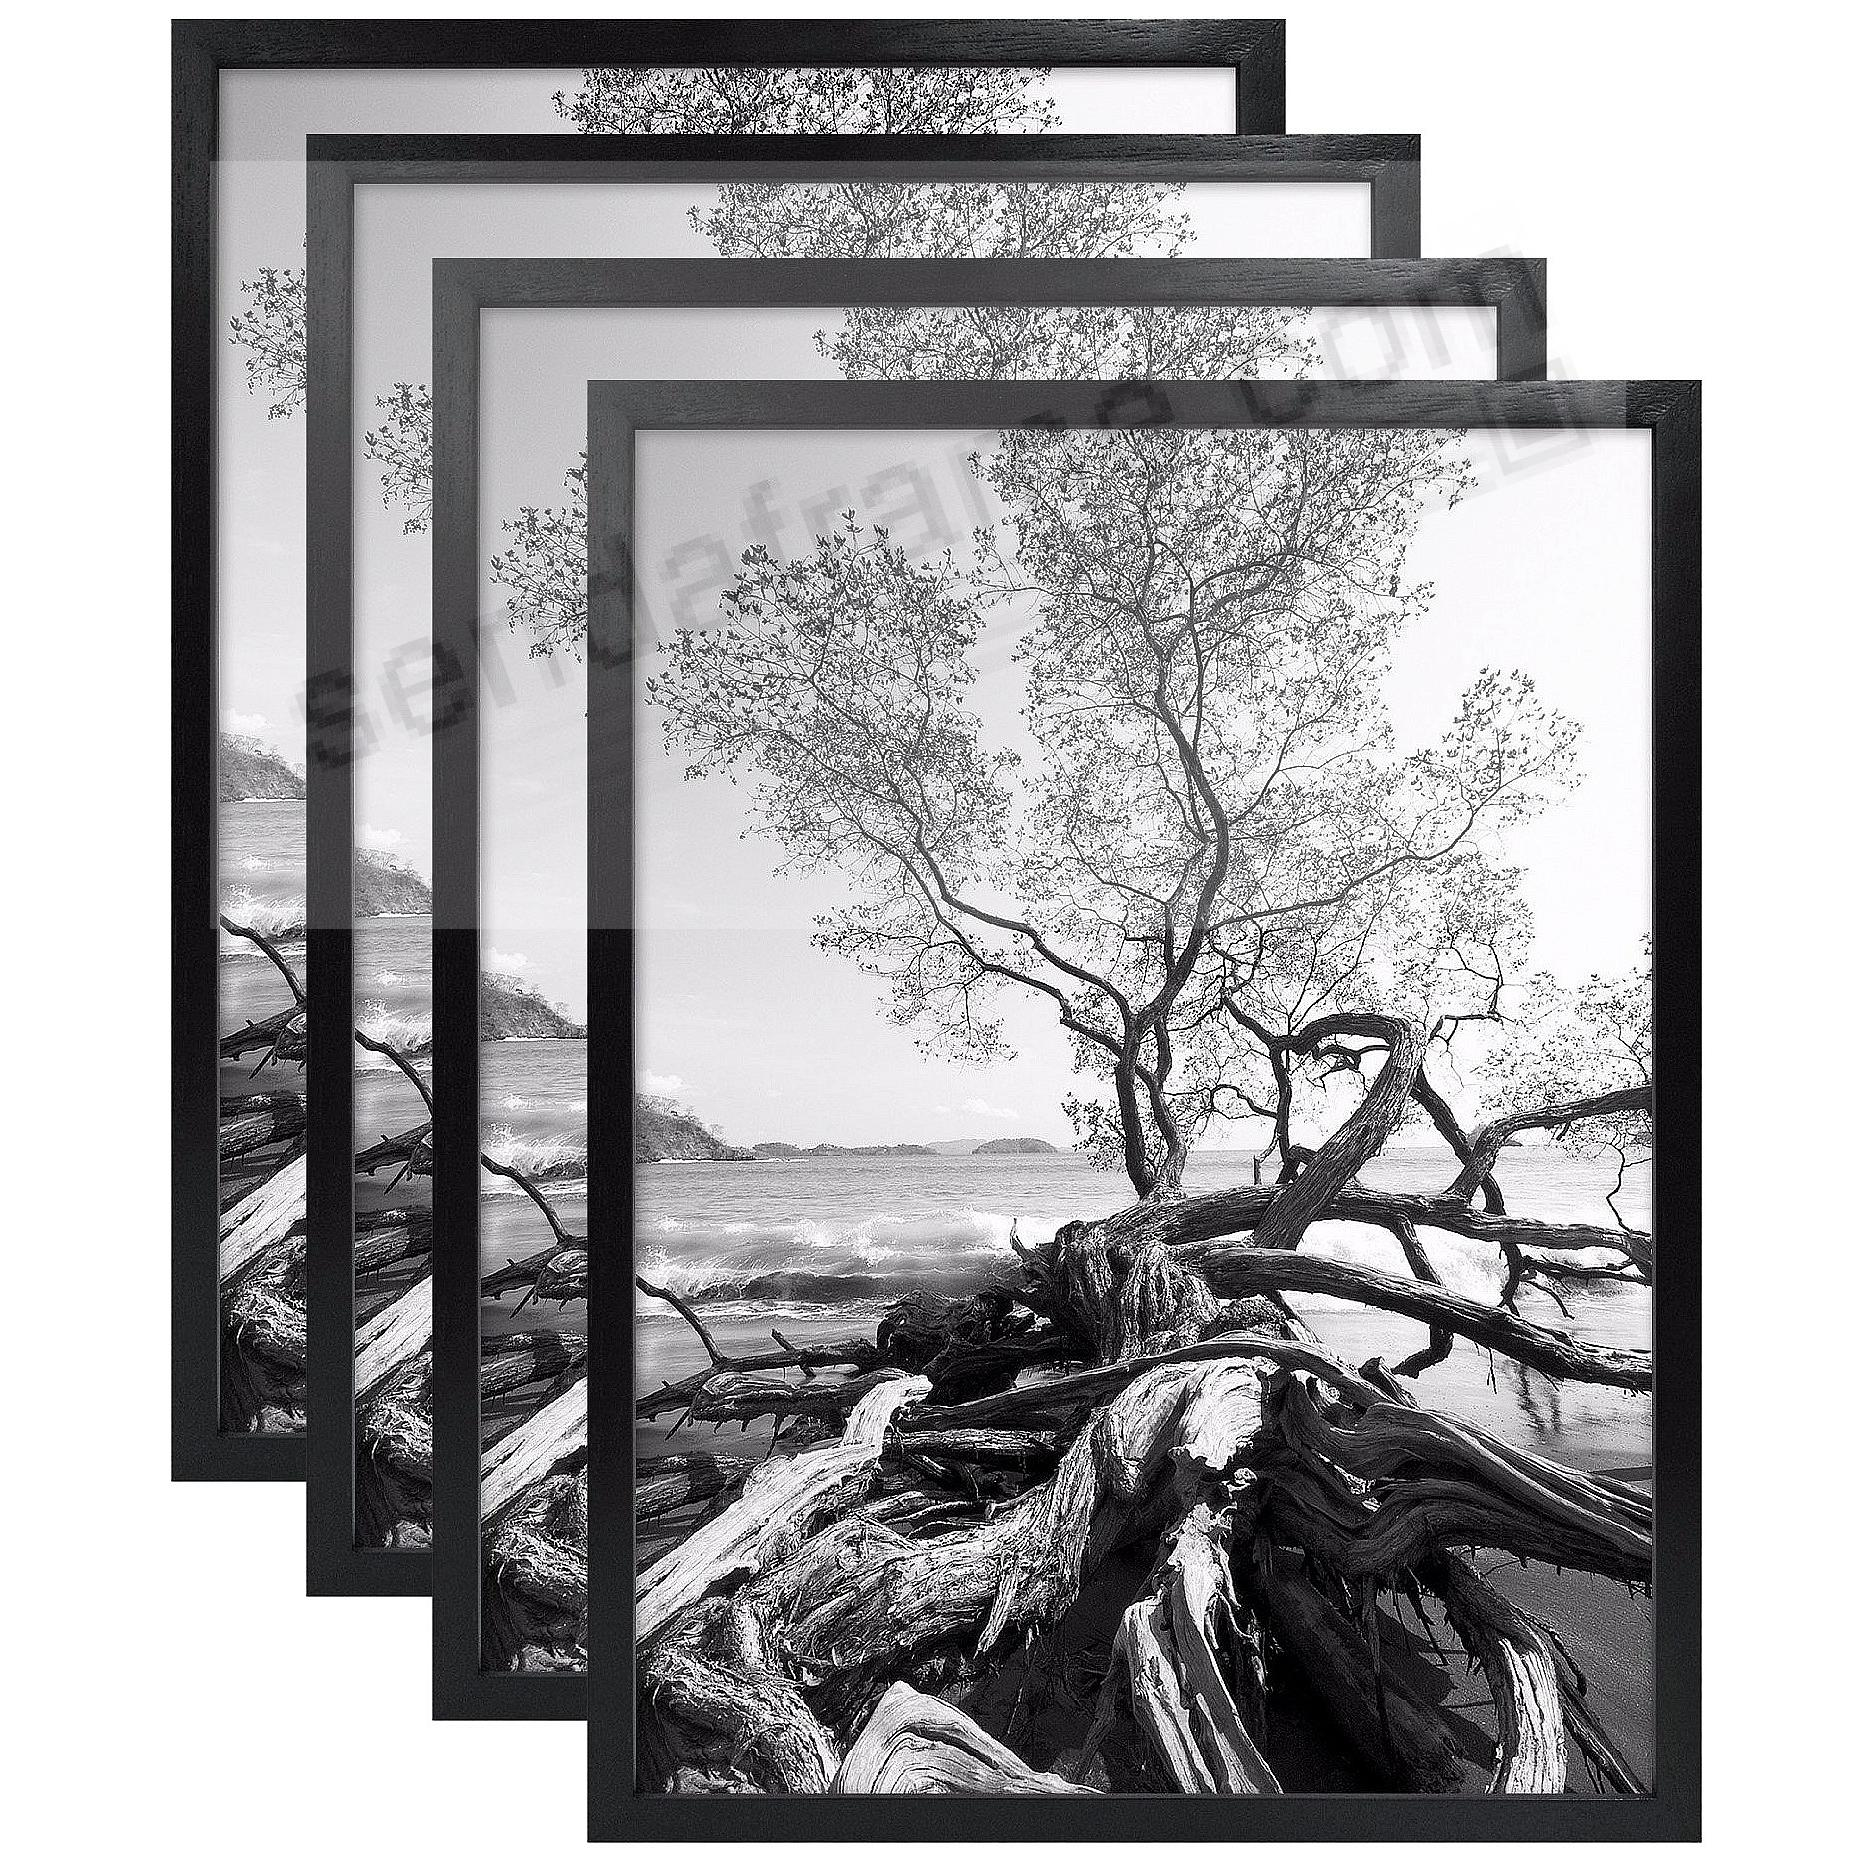 3821e951be96 Art Shadow-Box 24x36 Black Wood frame with 1-3/8in depth (sold in ...